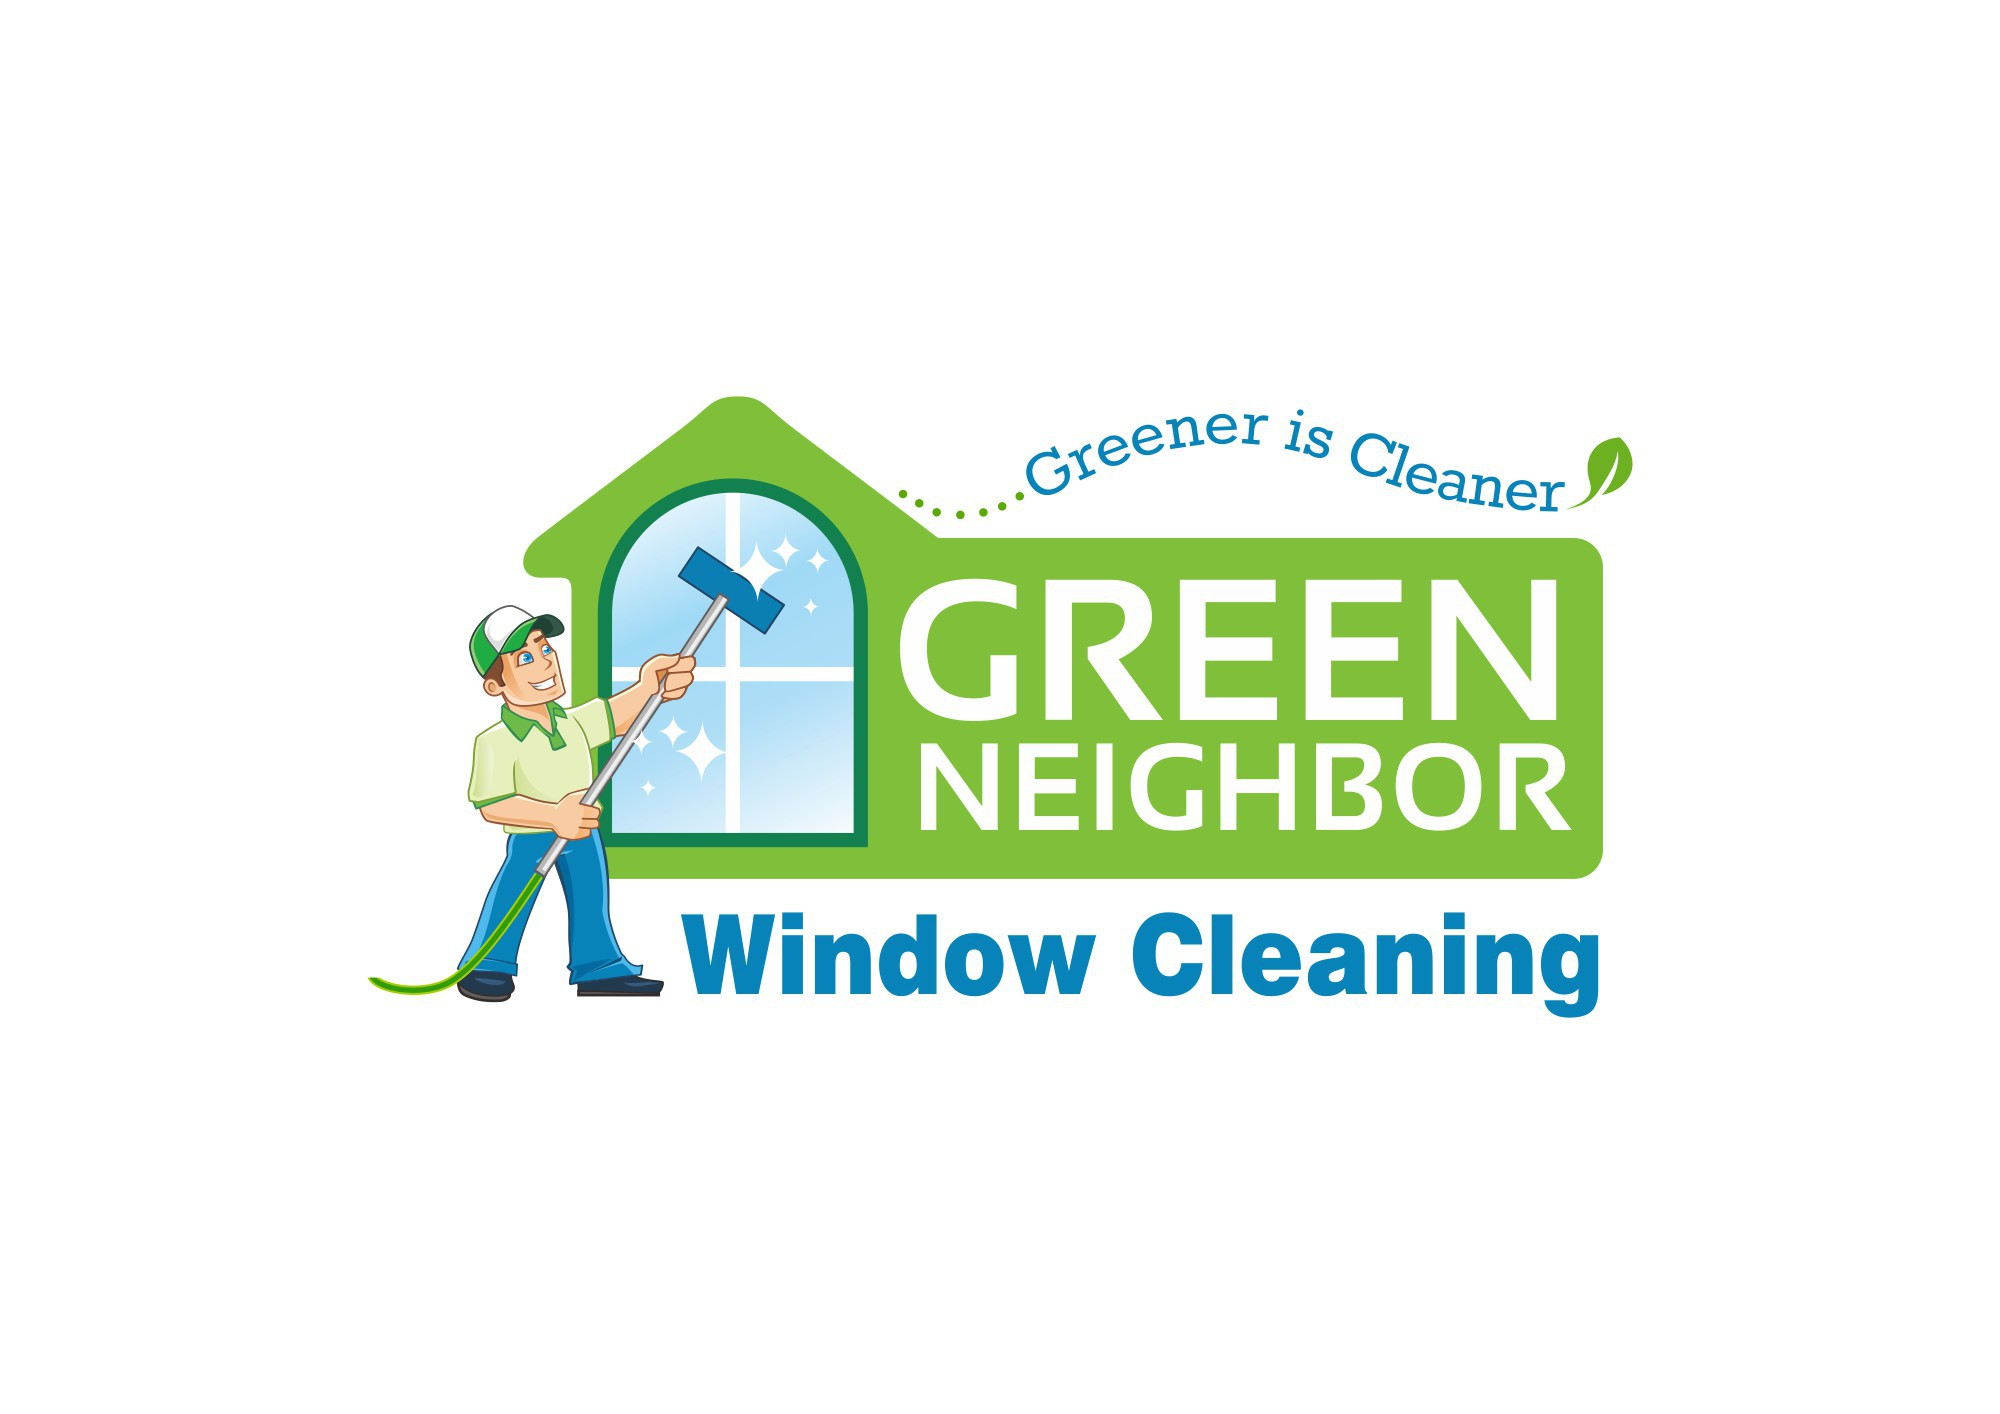 New logo wanted for Green Neighbor Window Cleaning